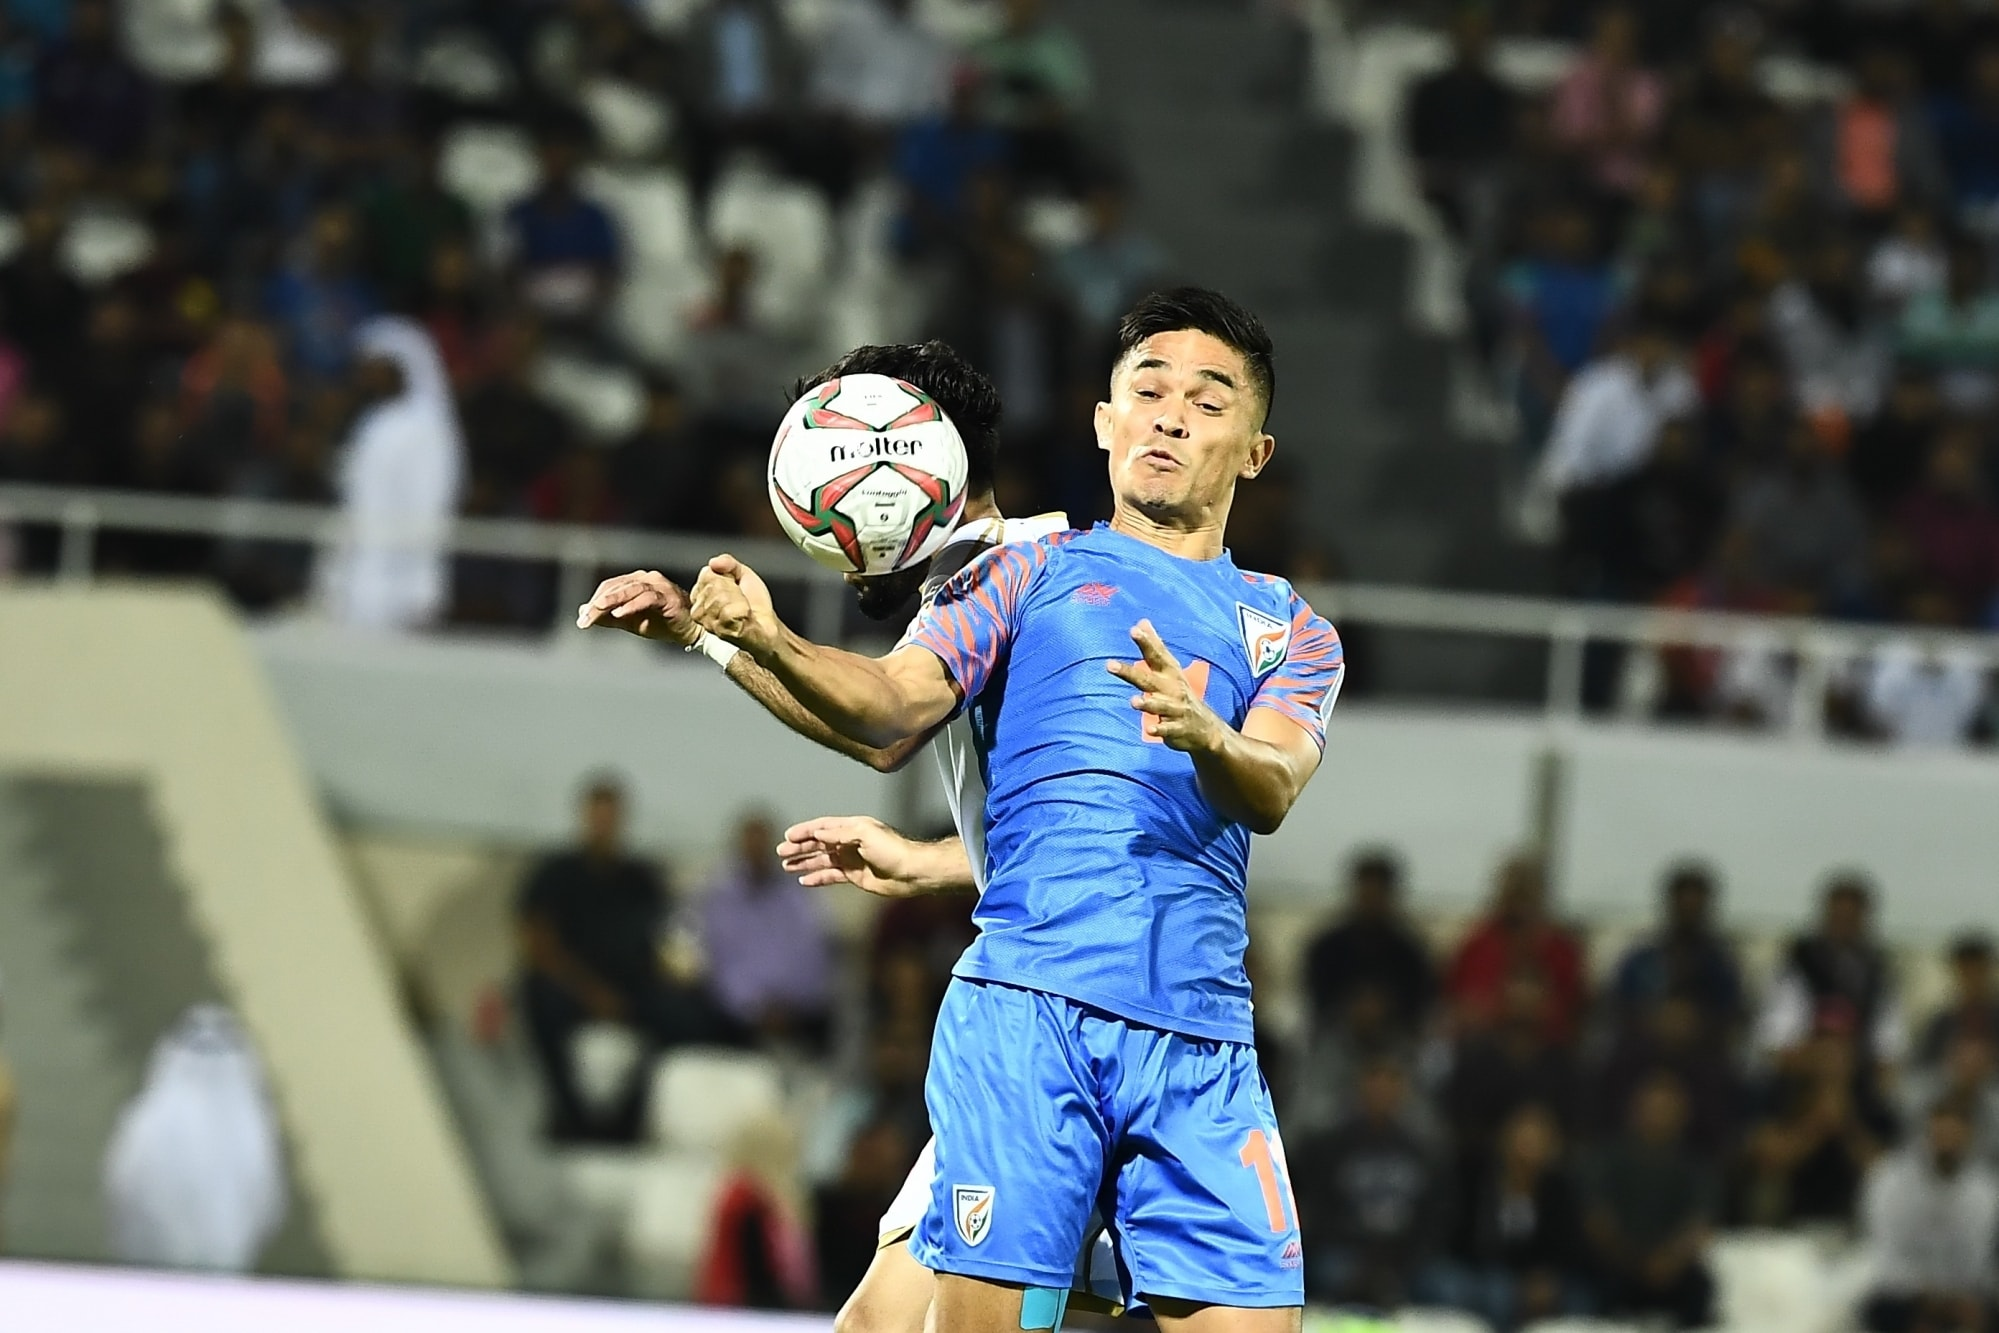 Padma Shri: Sunil Chhetri (Sports - Football): The 34-year-old Chhetri has led the Indian football team with distinction for over a decade now, and is the all-time highest scorer in the country. (Image Source: IANS)